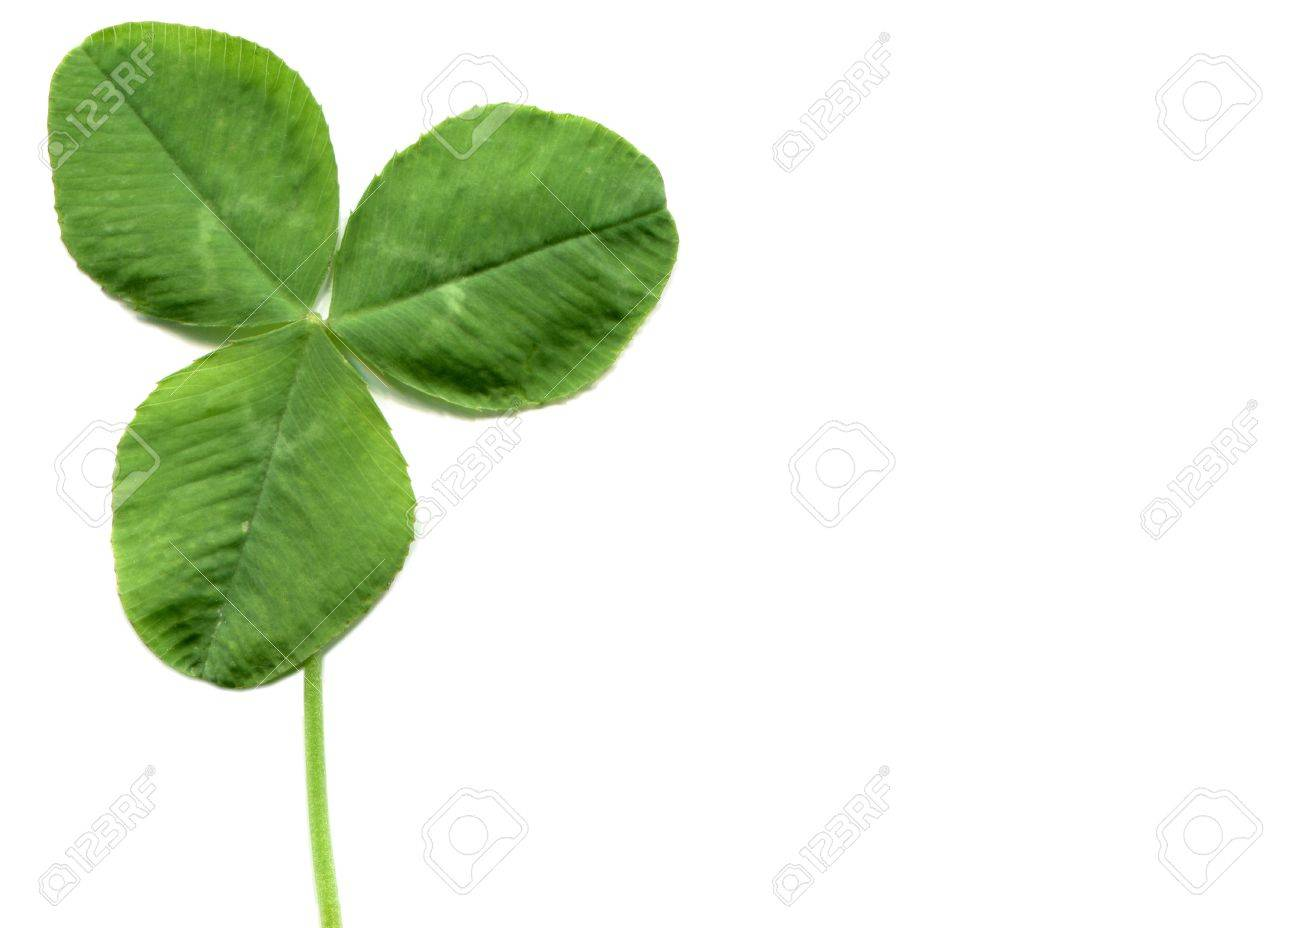 Shamrock Three Leafed Clover Trifolium Plant Over A White